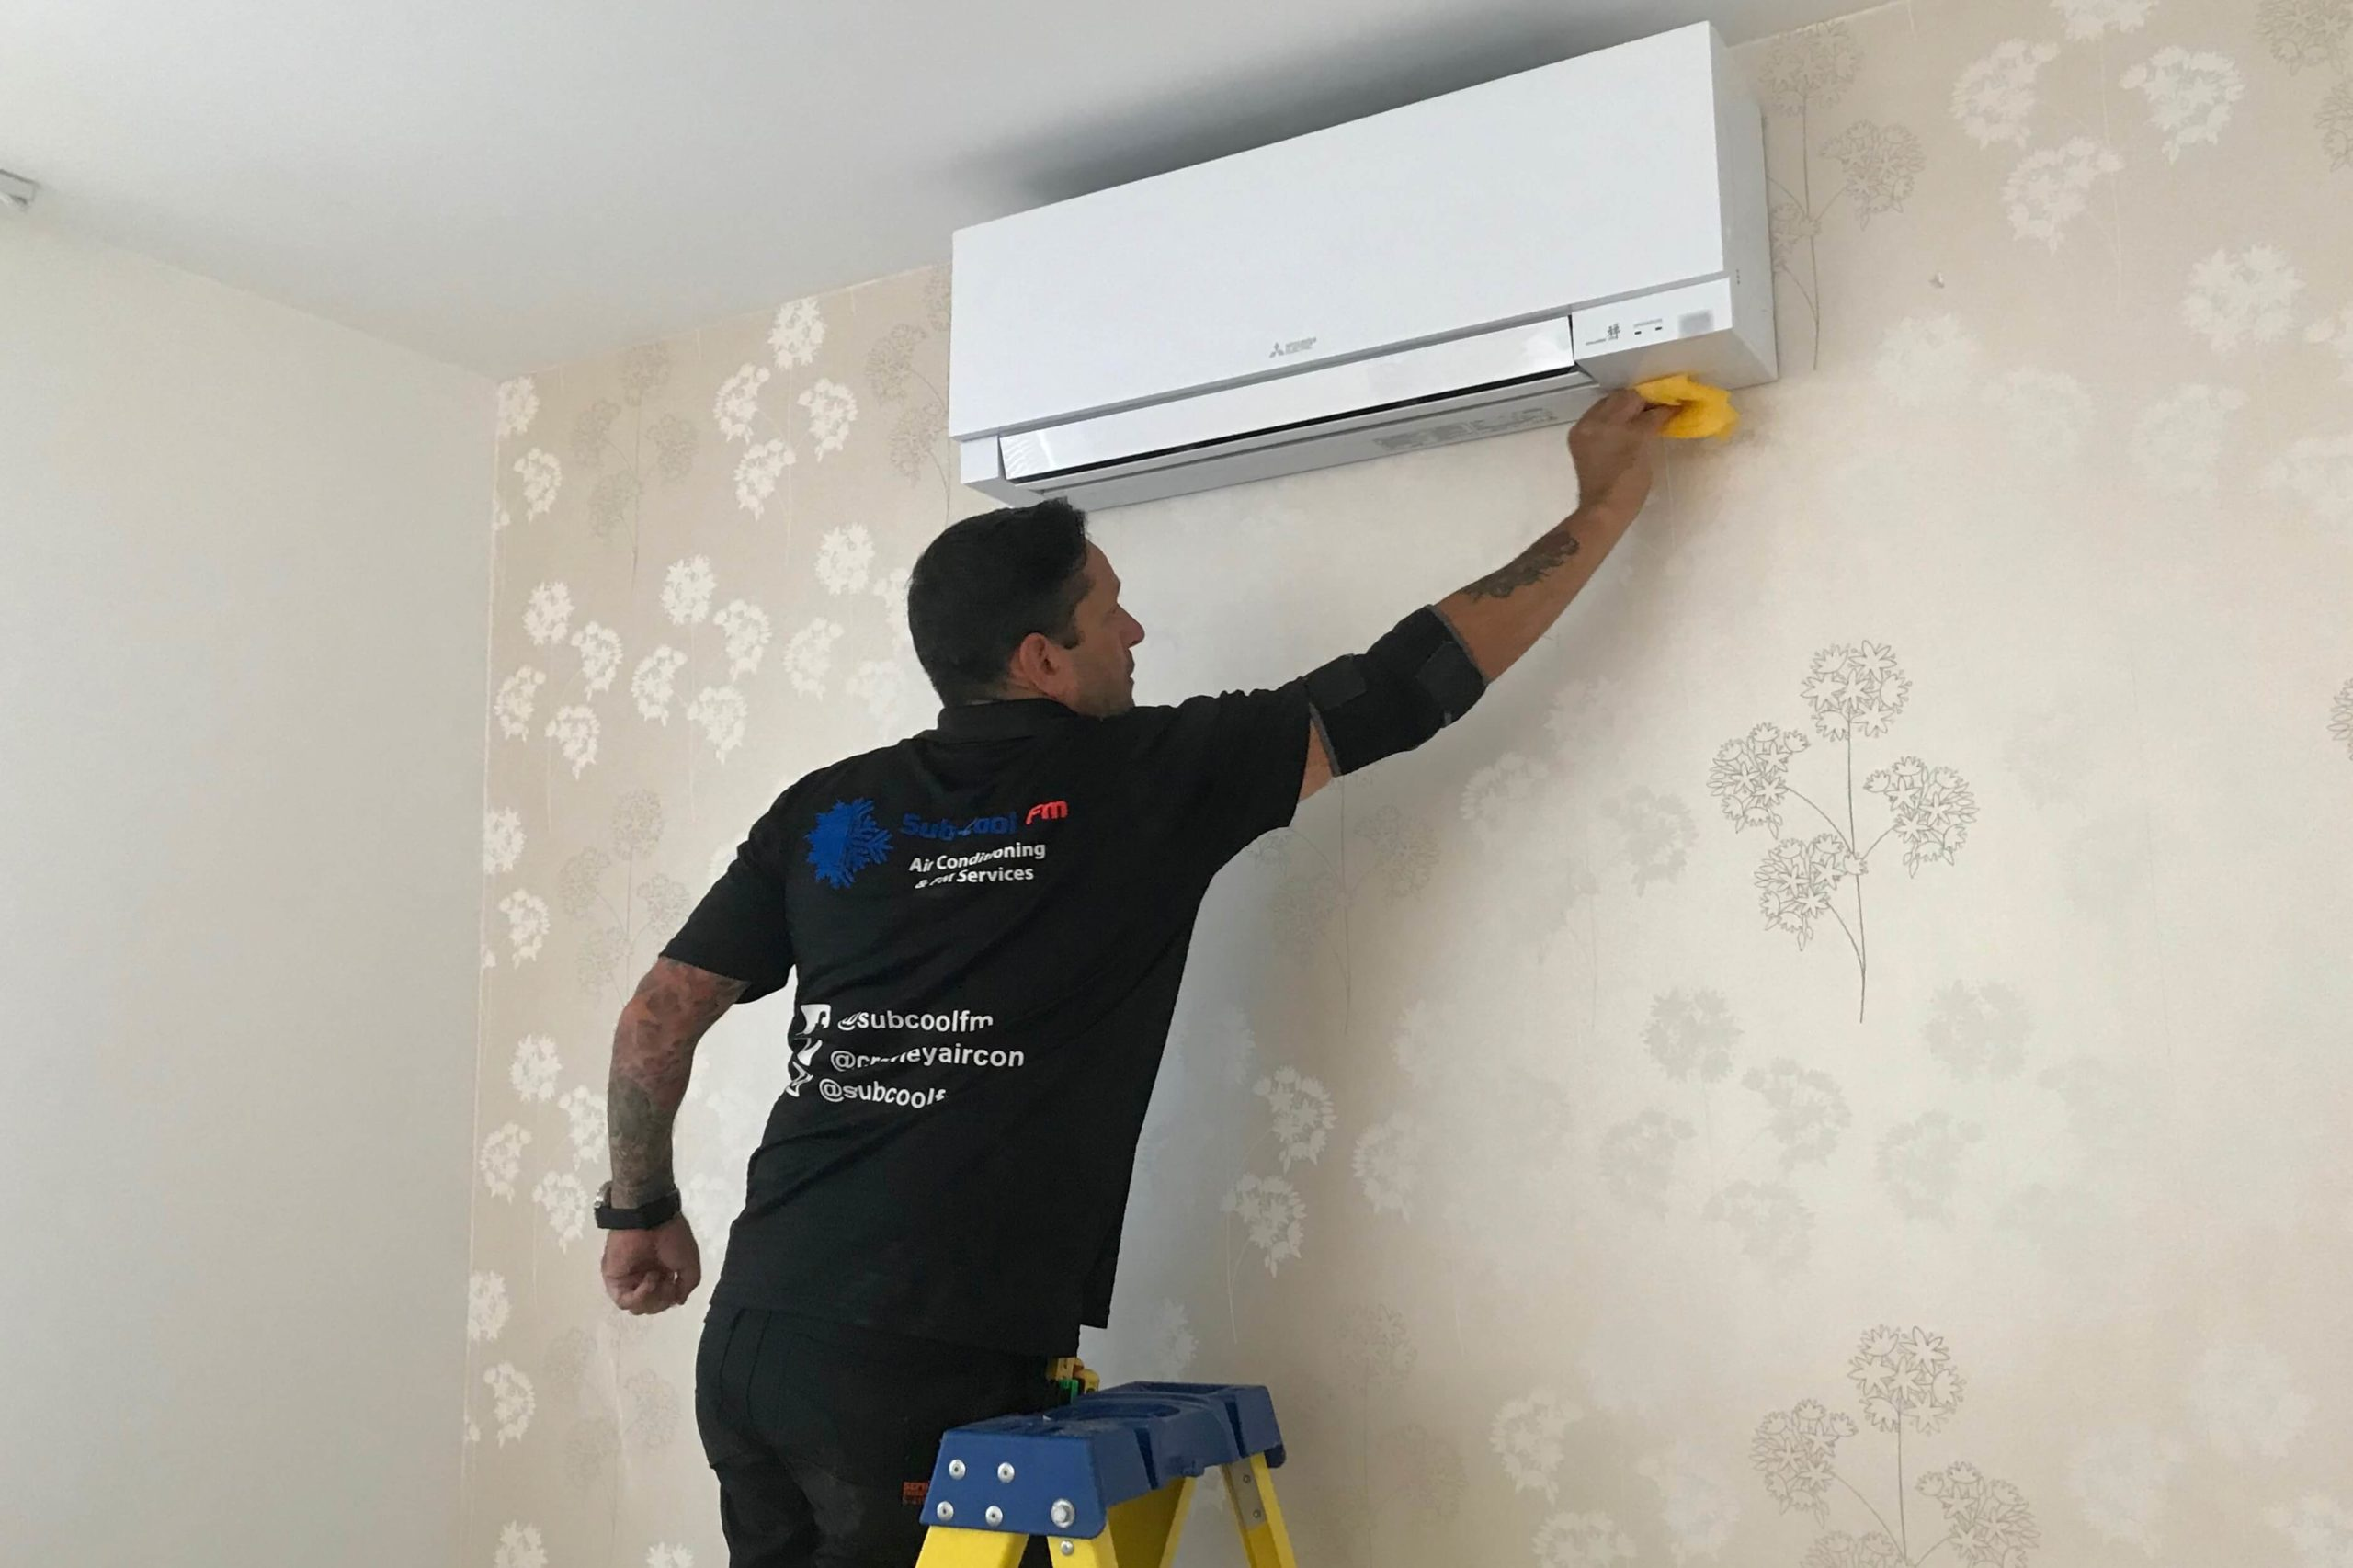 SubCool FM engineer working on white Mitsubishi Electric wall mounted air conditioning unit